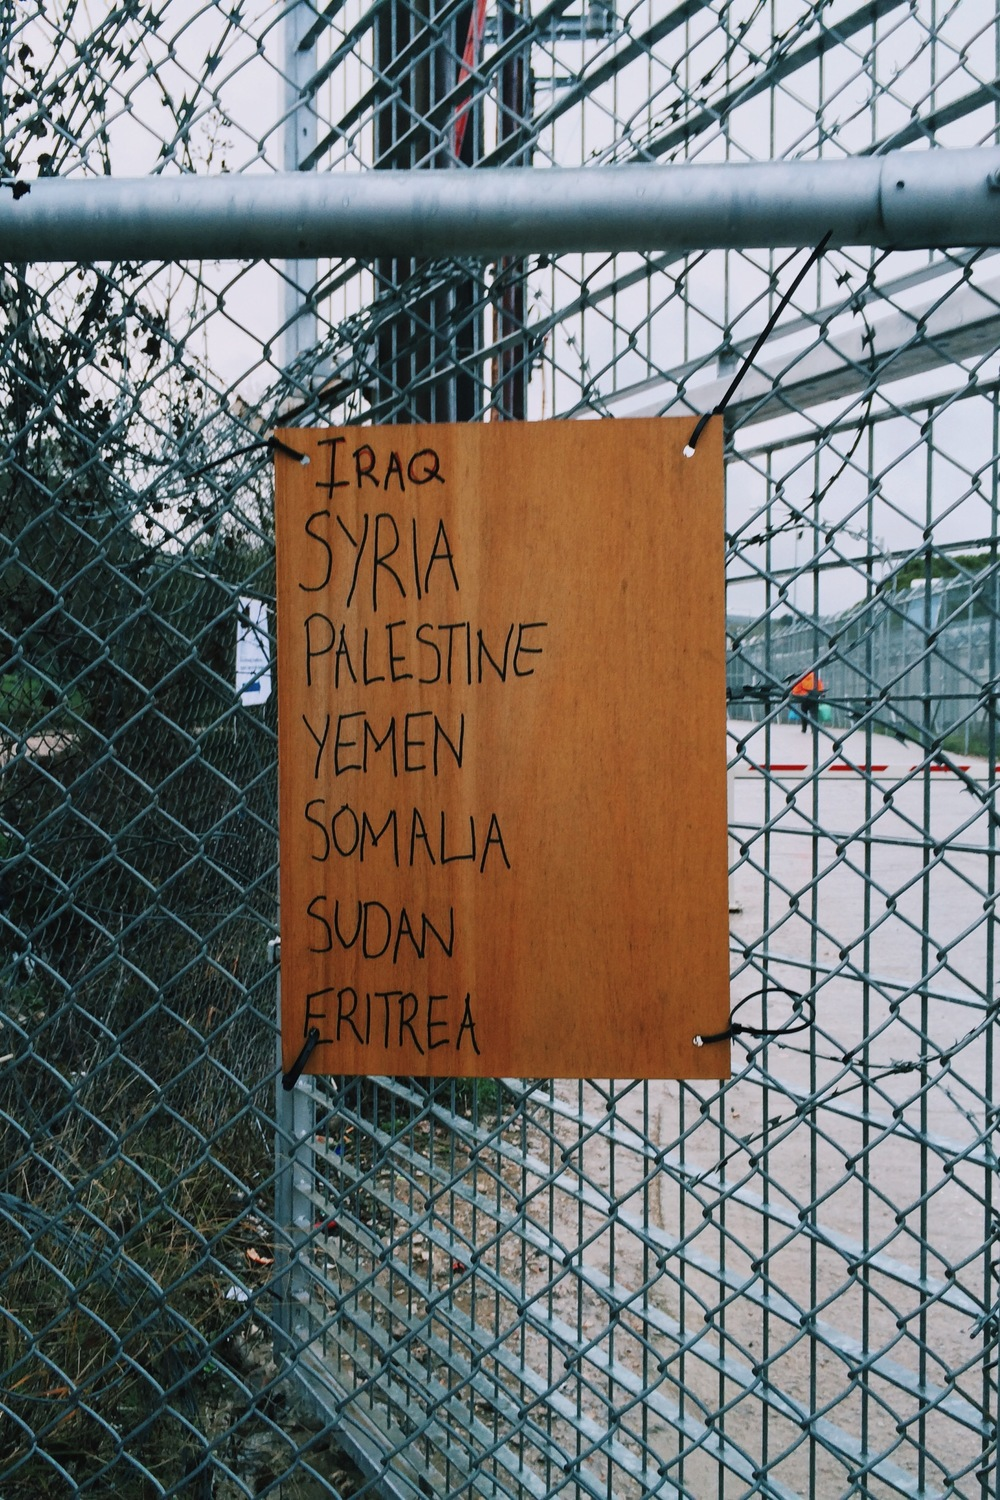 Official signage on the Syrian Gate, Moria.